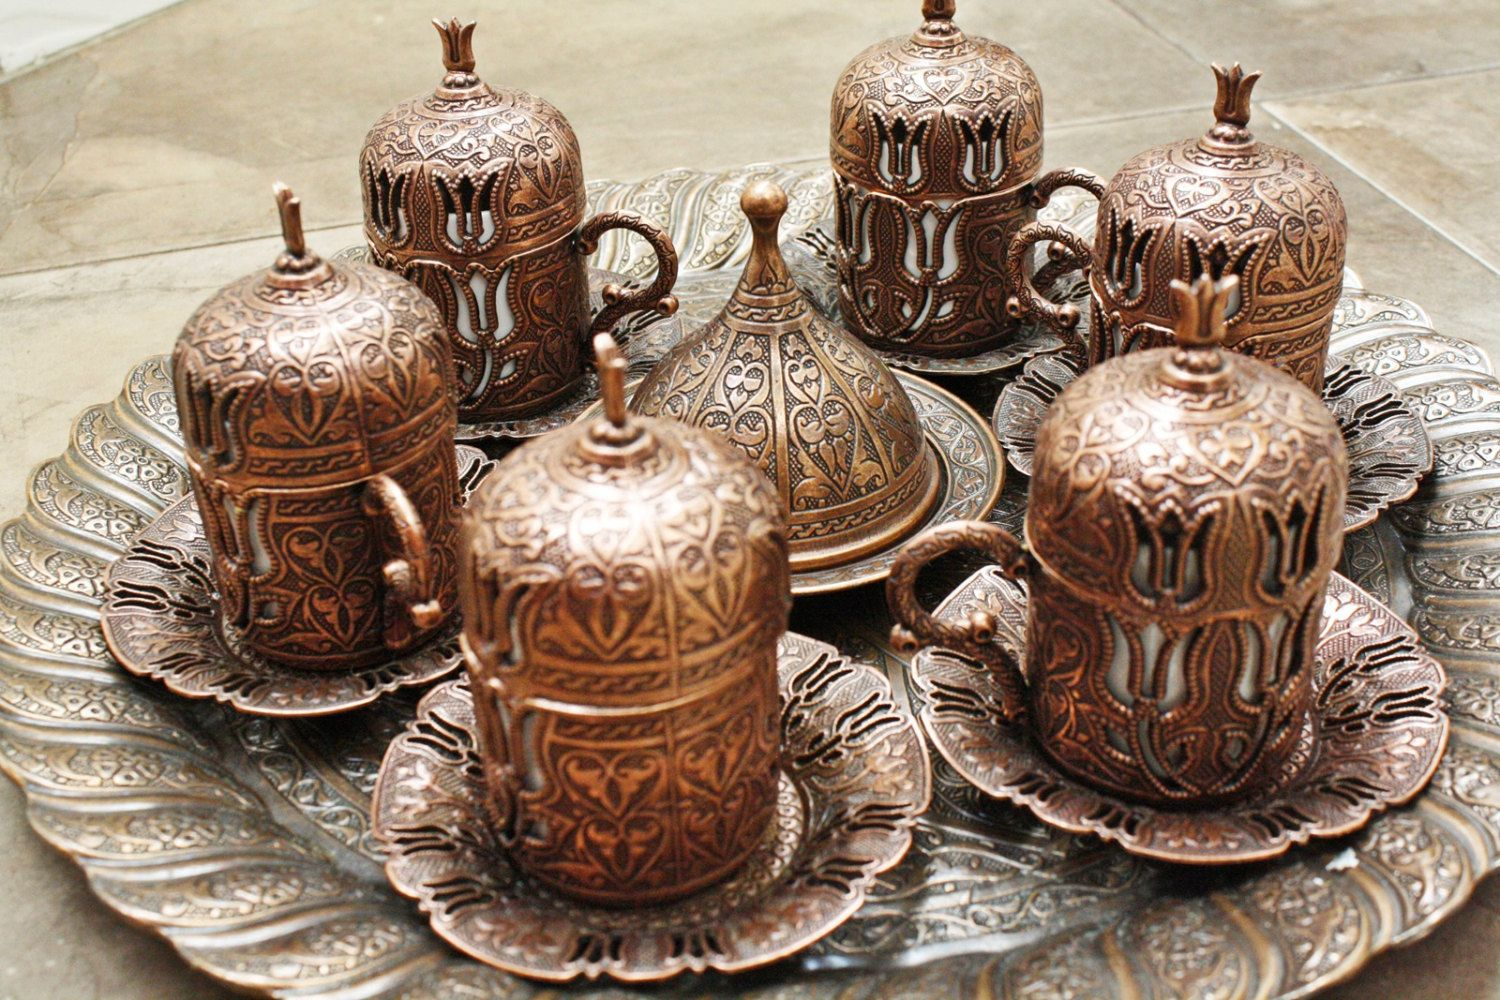 Turkish Coffee Espresso Set, serving plate tray with 6